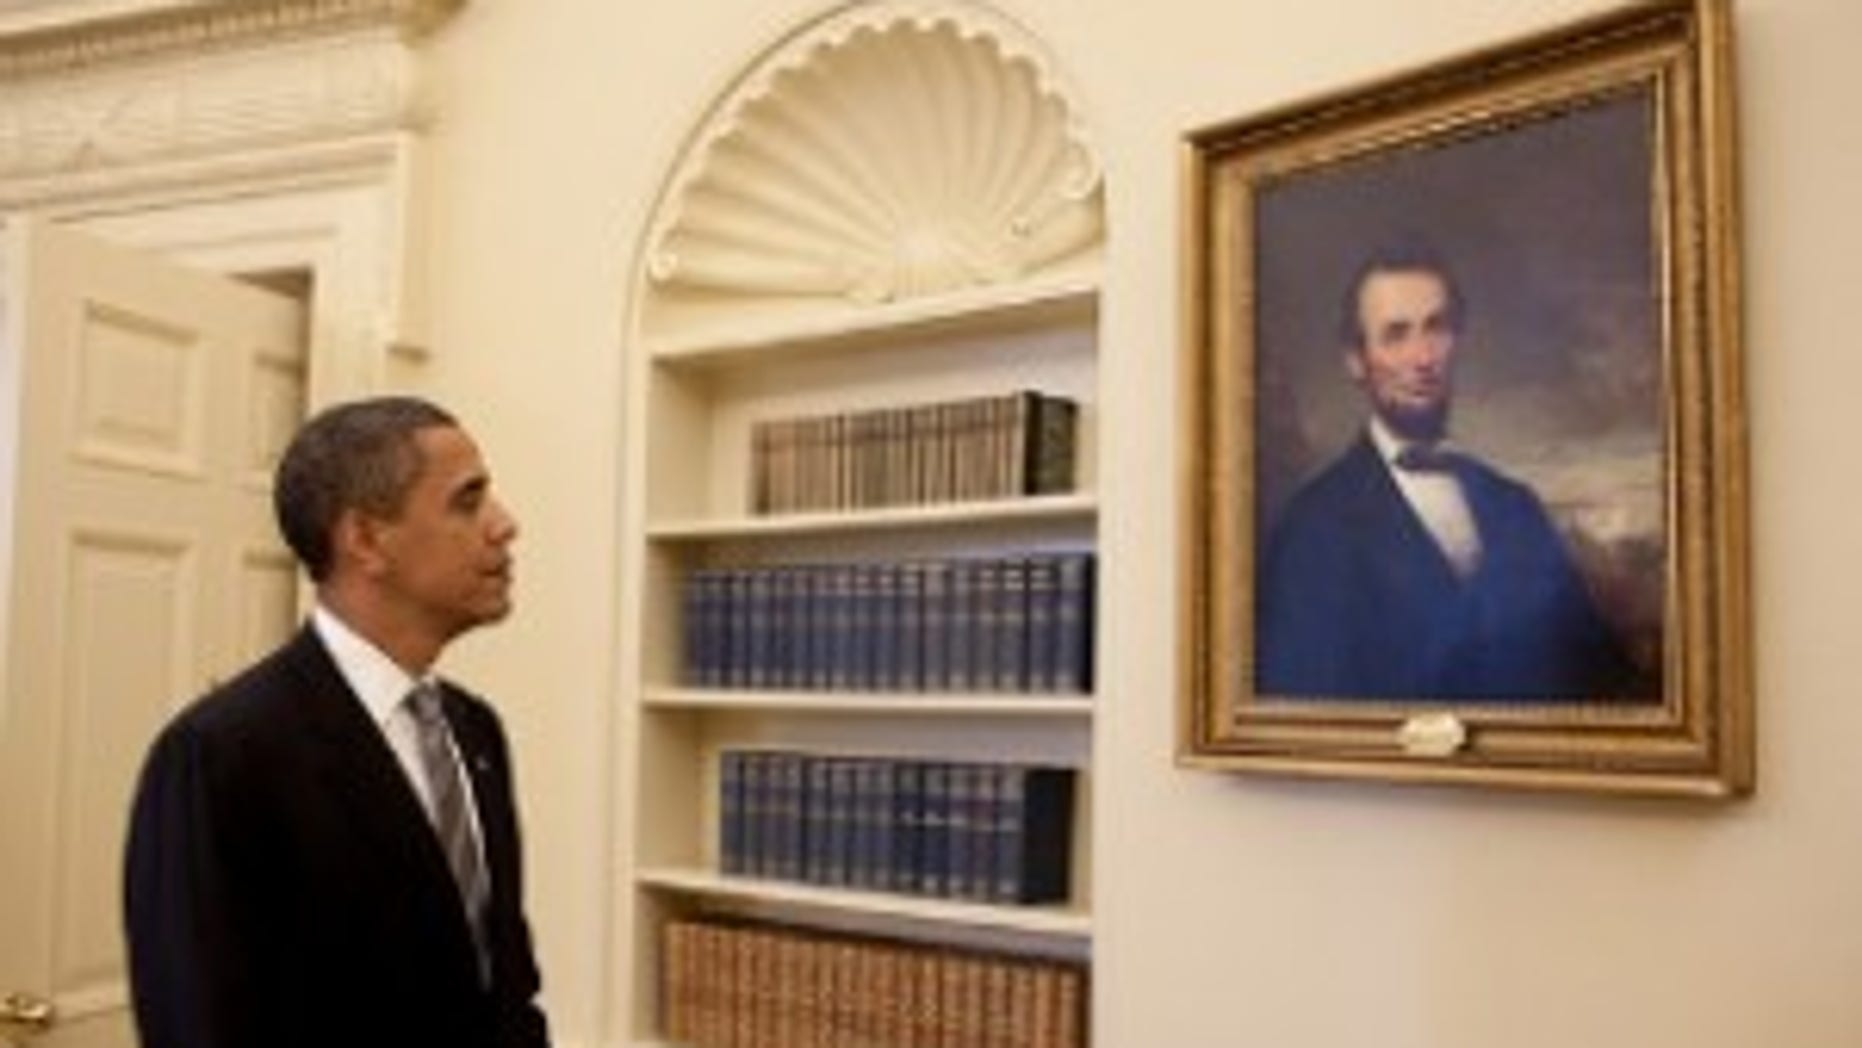 President Obama looks at a portrait of Abraham Lincoln in the Oval Office/White House Photo